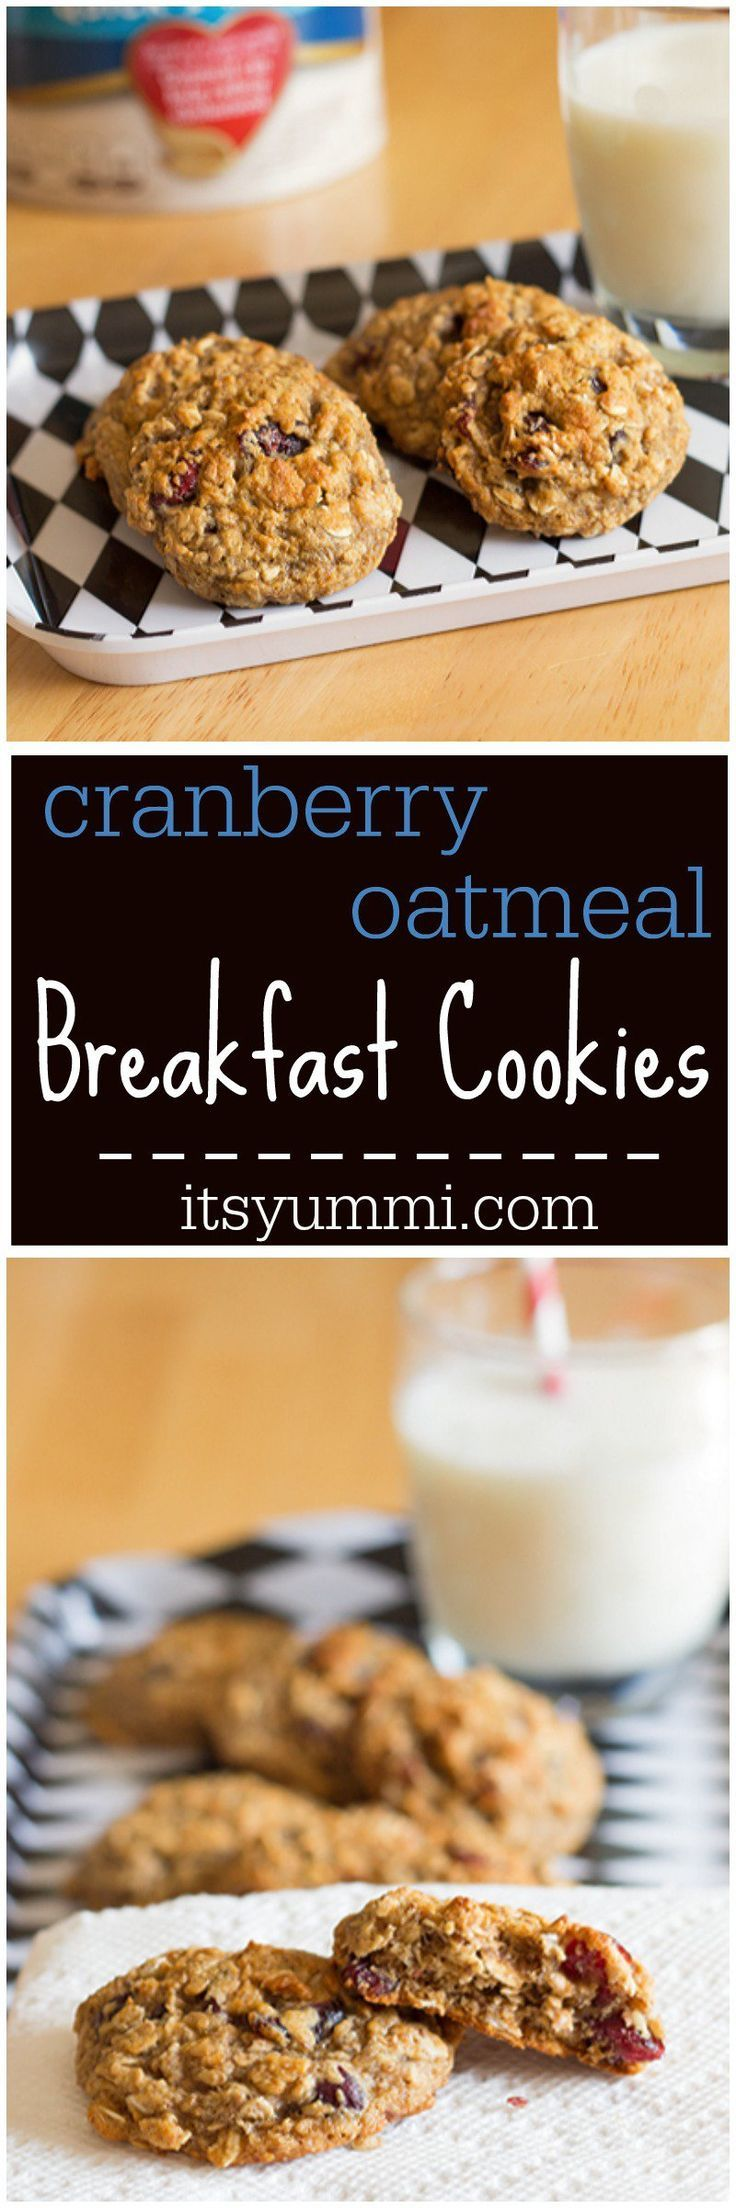 Oatmeal, Cookies and Cranberries on Pinterest